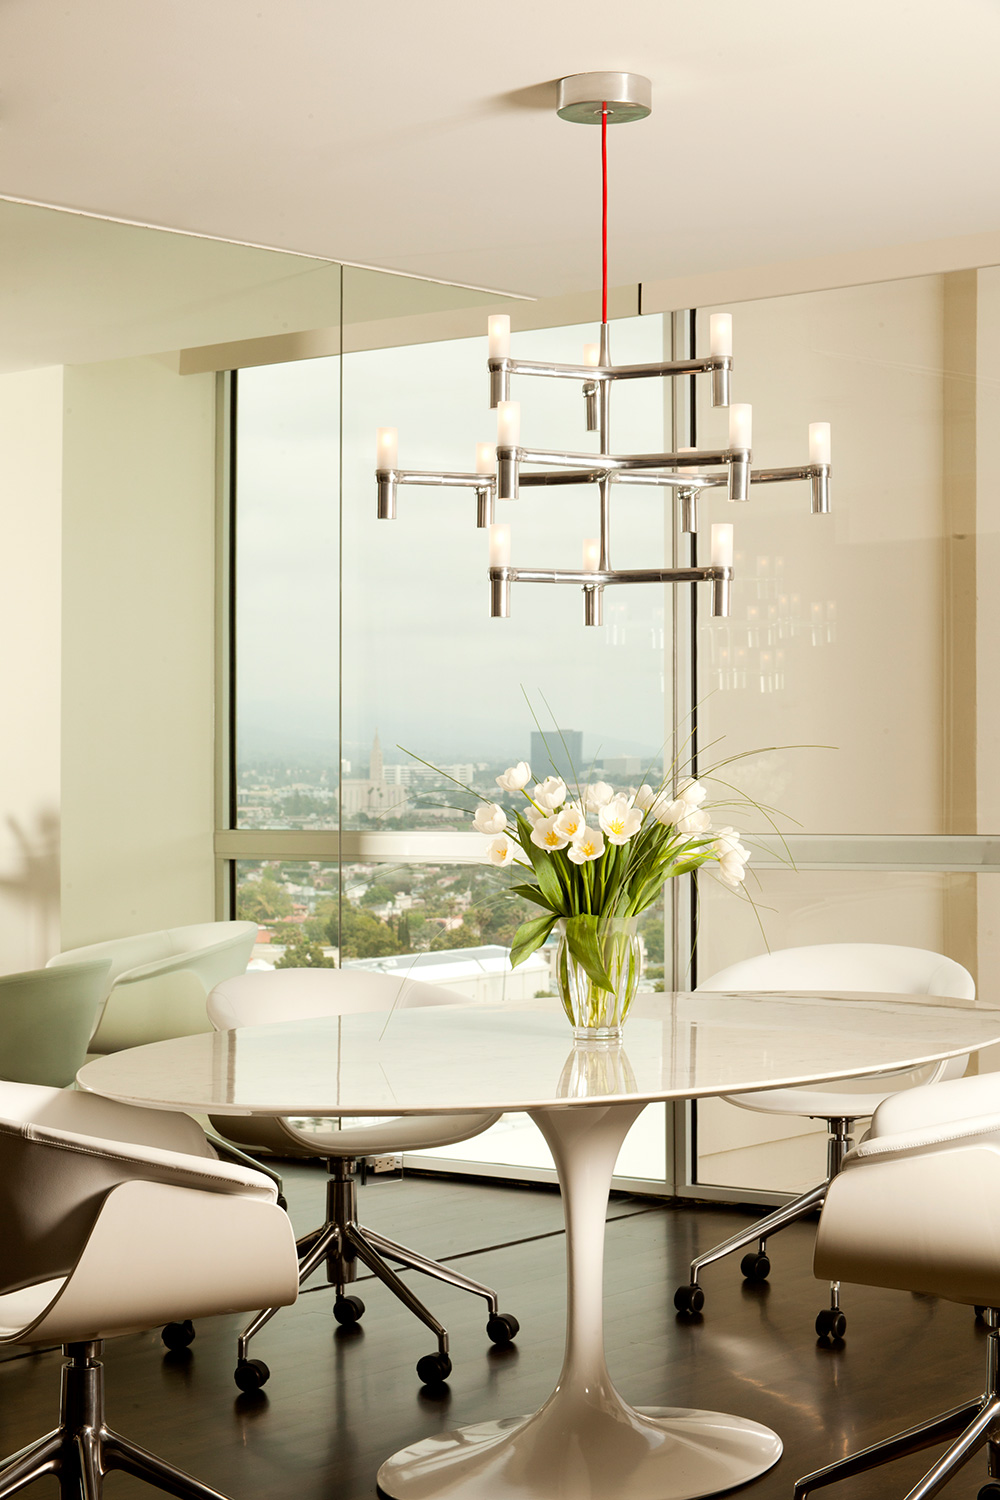 Elegance meets warmth in this Century Towers interior remodel in Los Angeles, CA